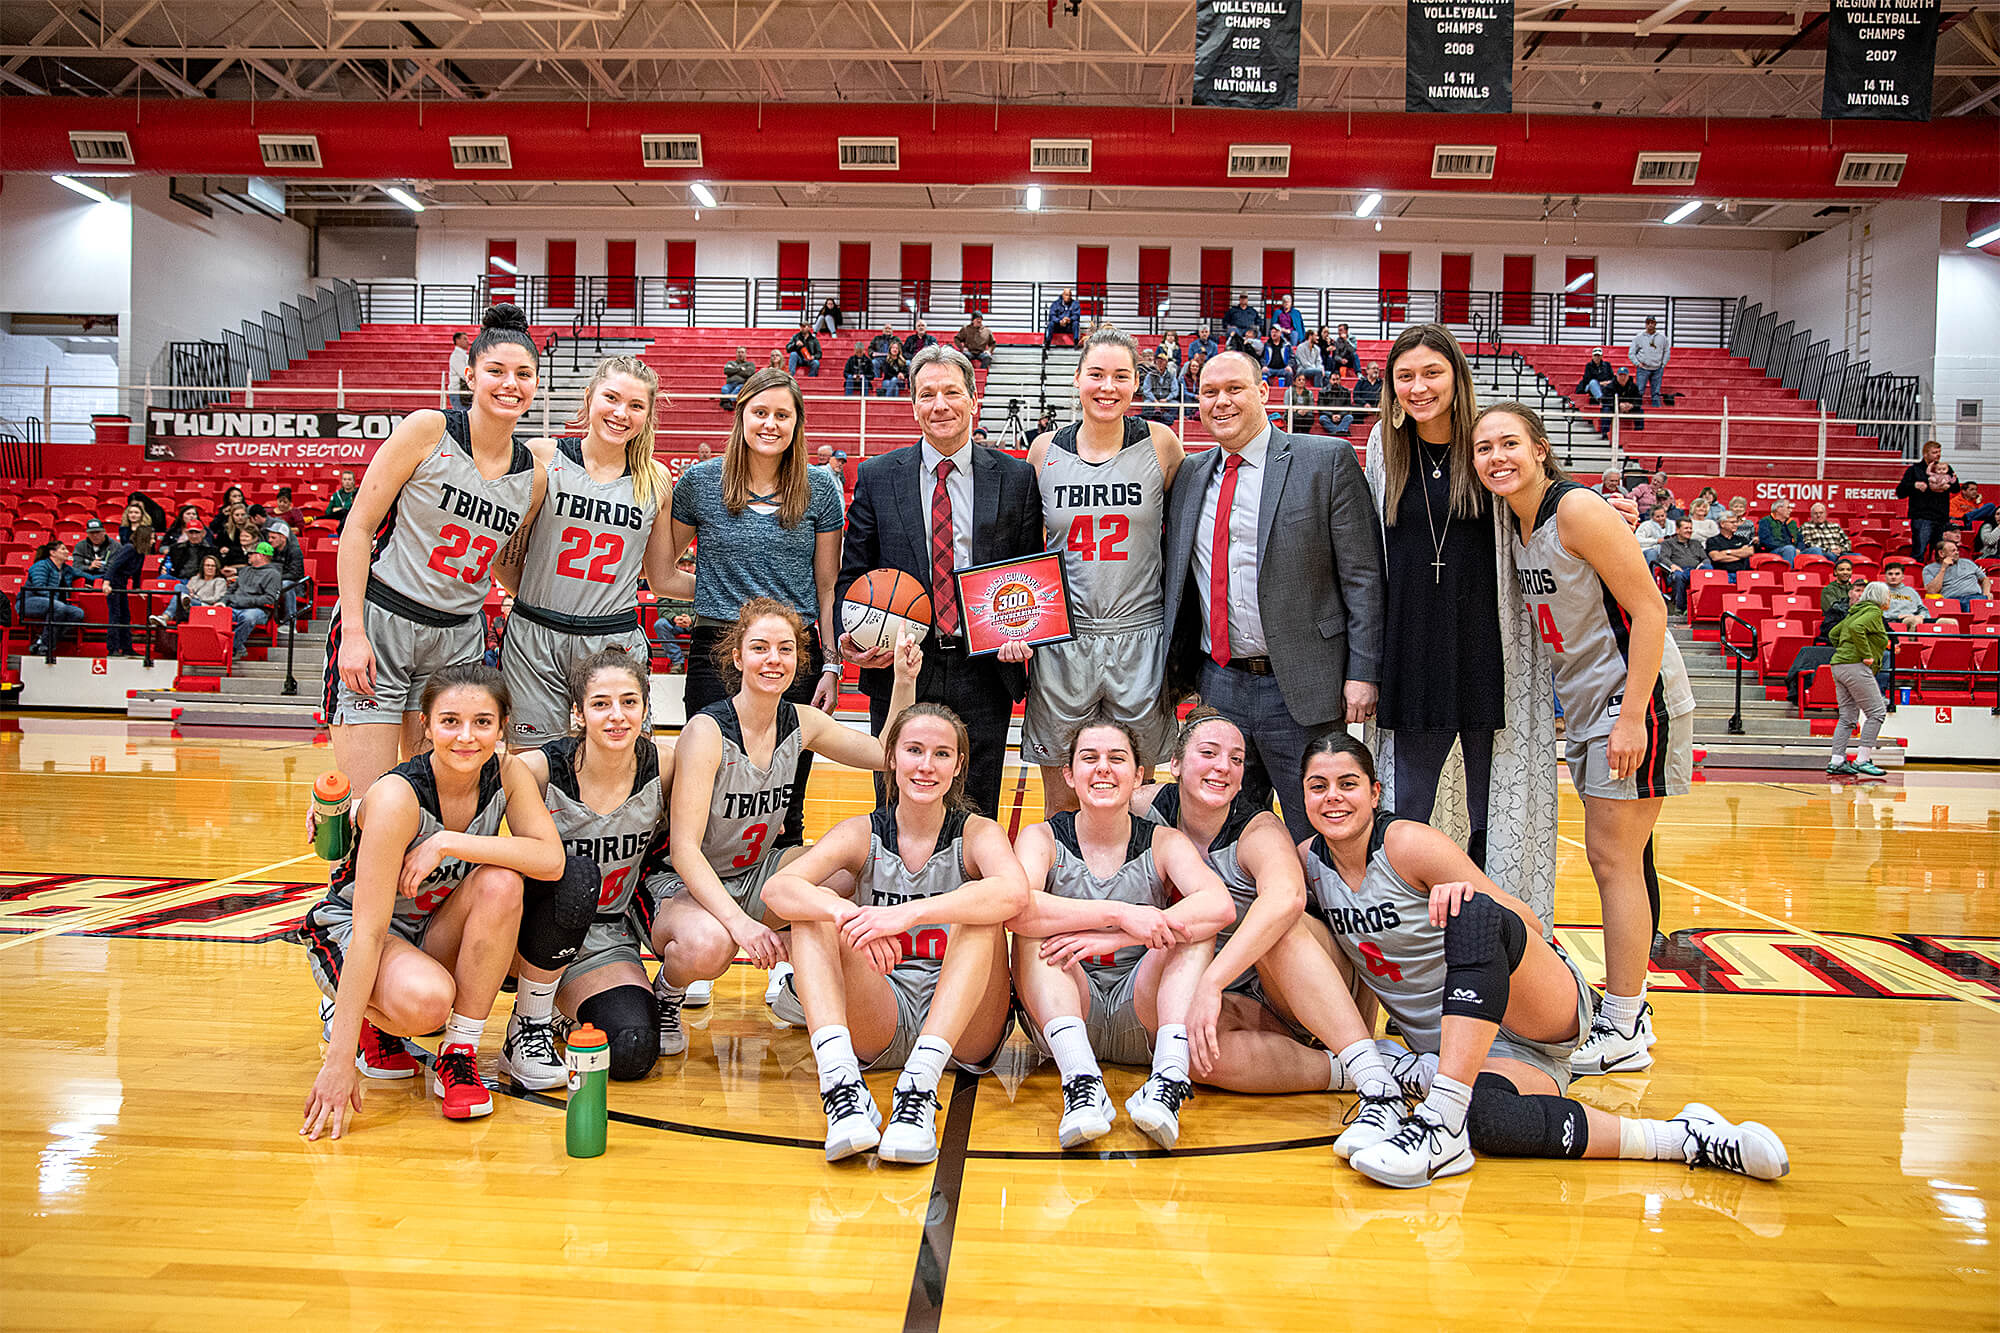 Group photo of the Casper College Women's Basketball team and coaches.